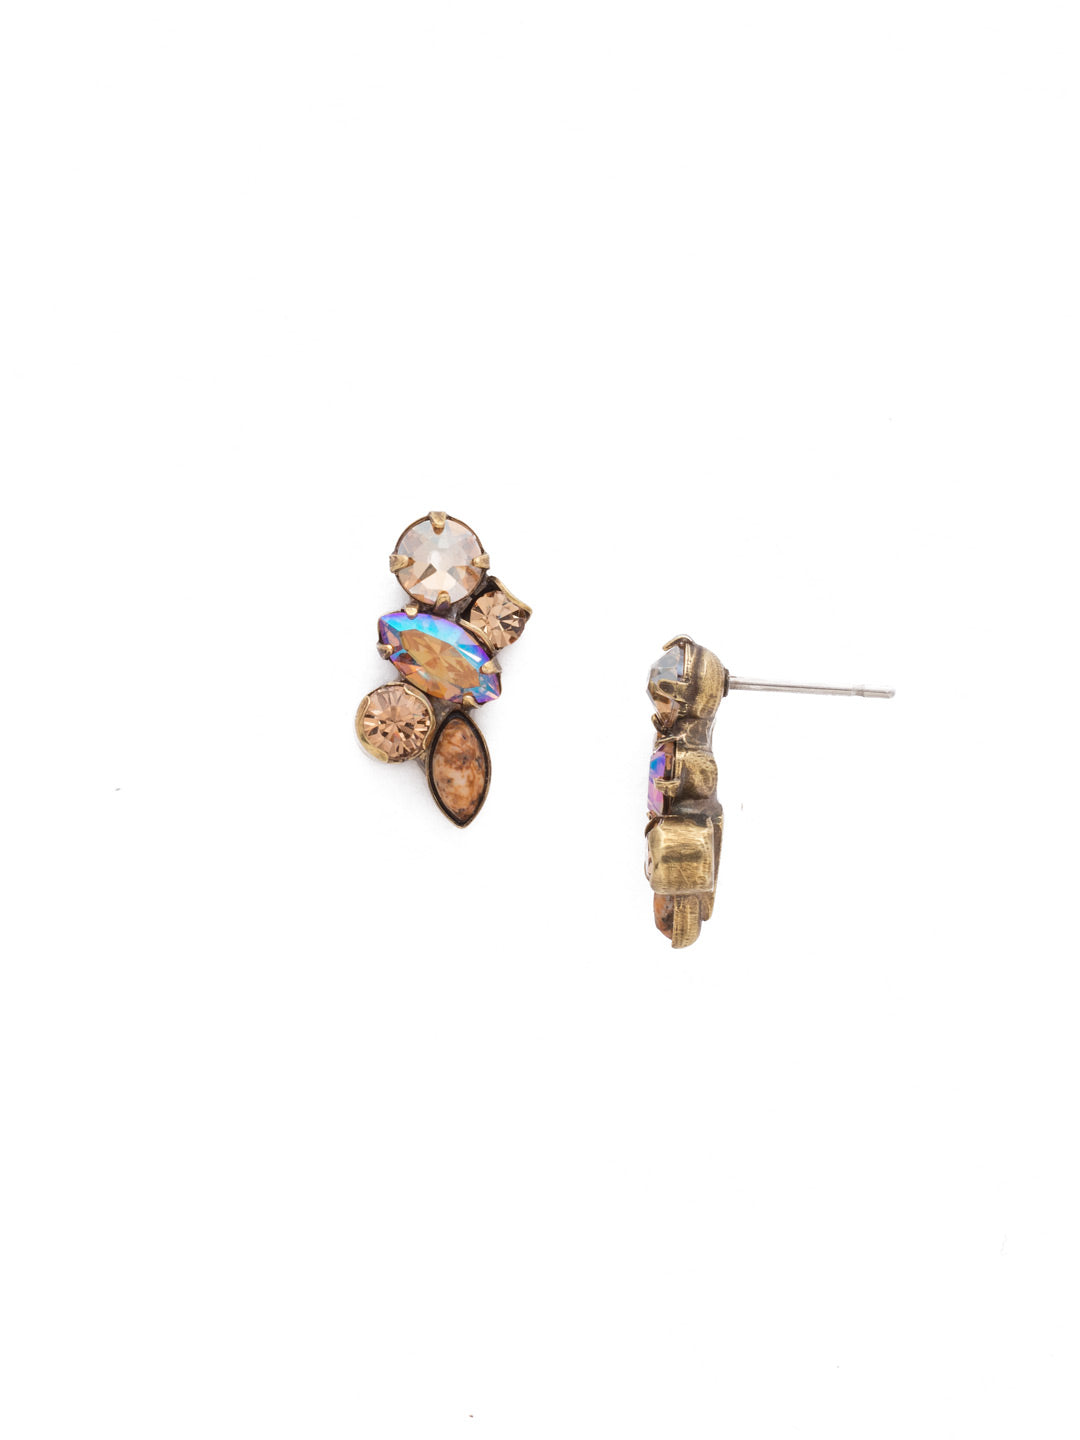 Petite Crystal Cluster Post Earrings - EDG5AGNT